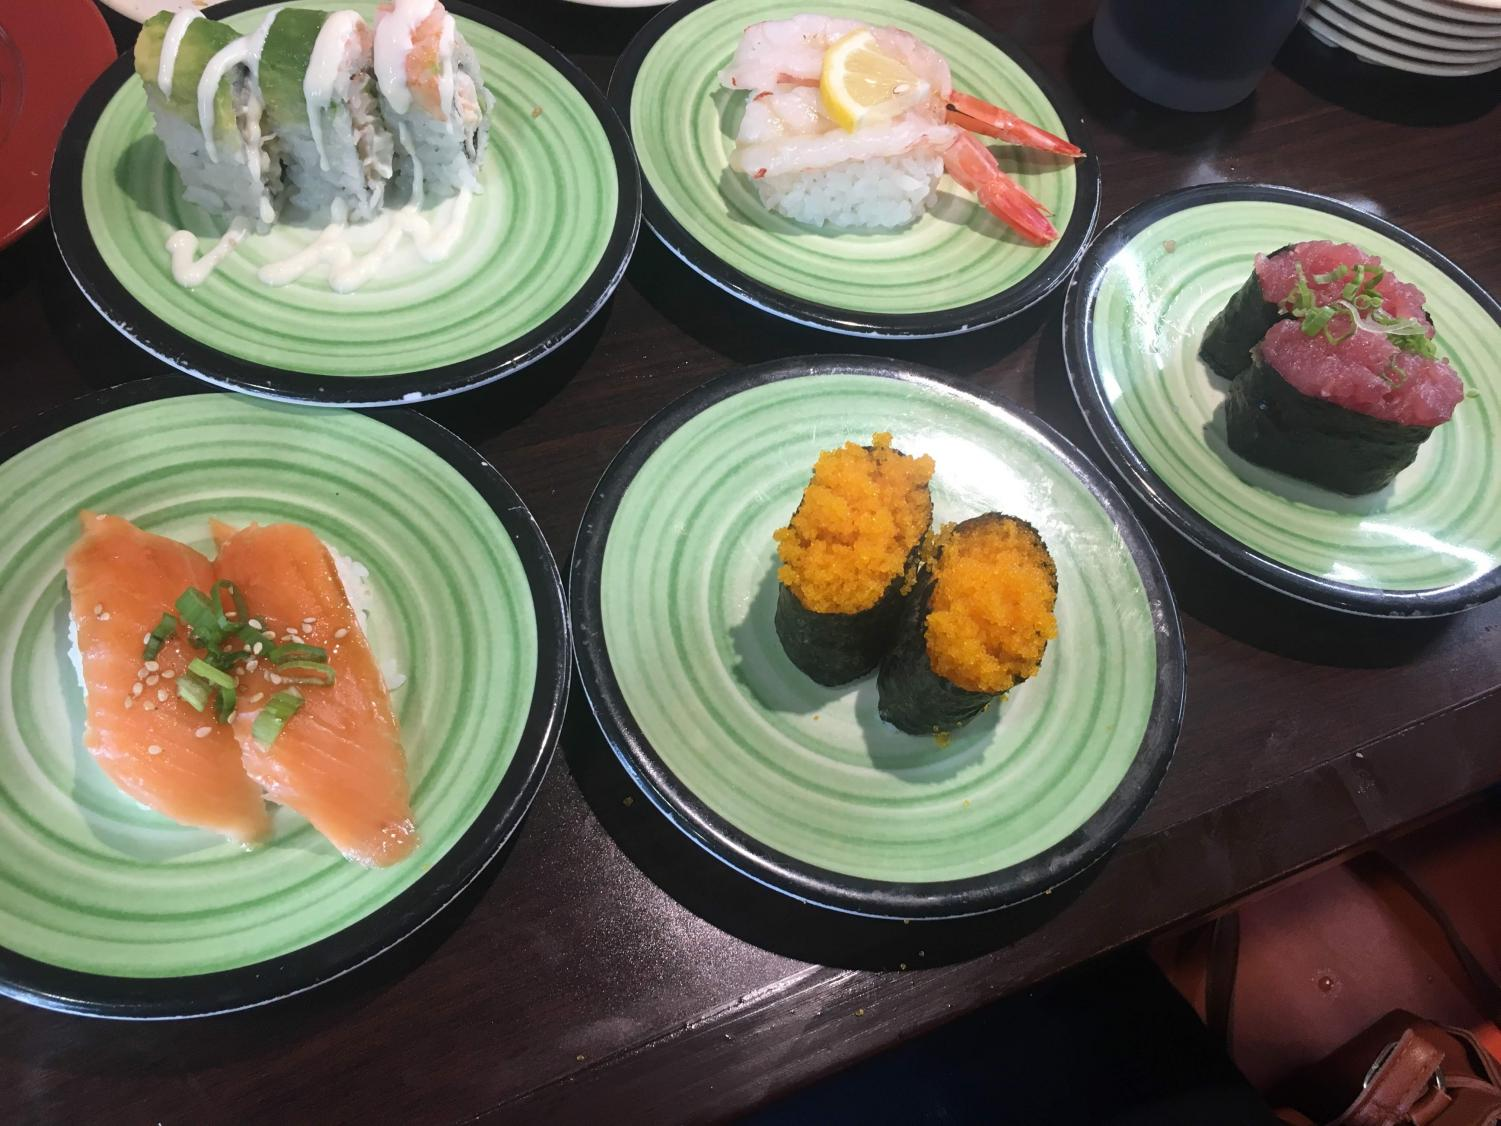 In this week's culinary crusade, Kanz visits Kura Sushi, a restaurant with a revolving sushi bar. Patrons can pick whatever sushi they want by pulling it off a revolving built or ordering it on a tablet.